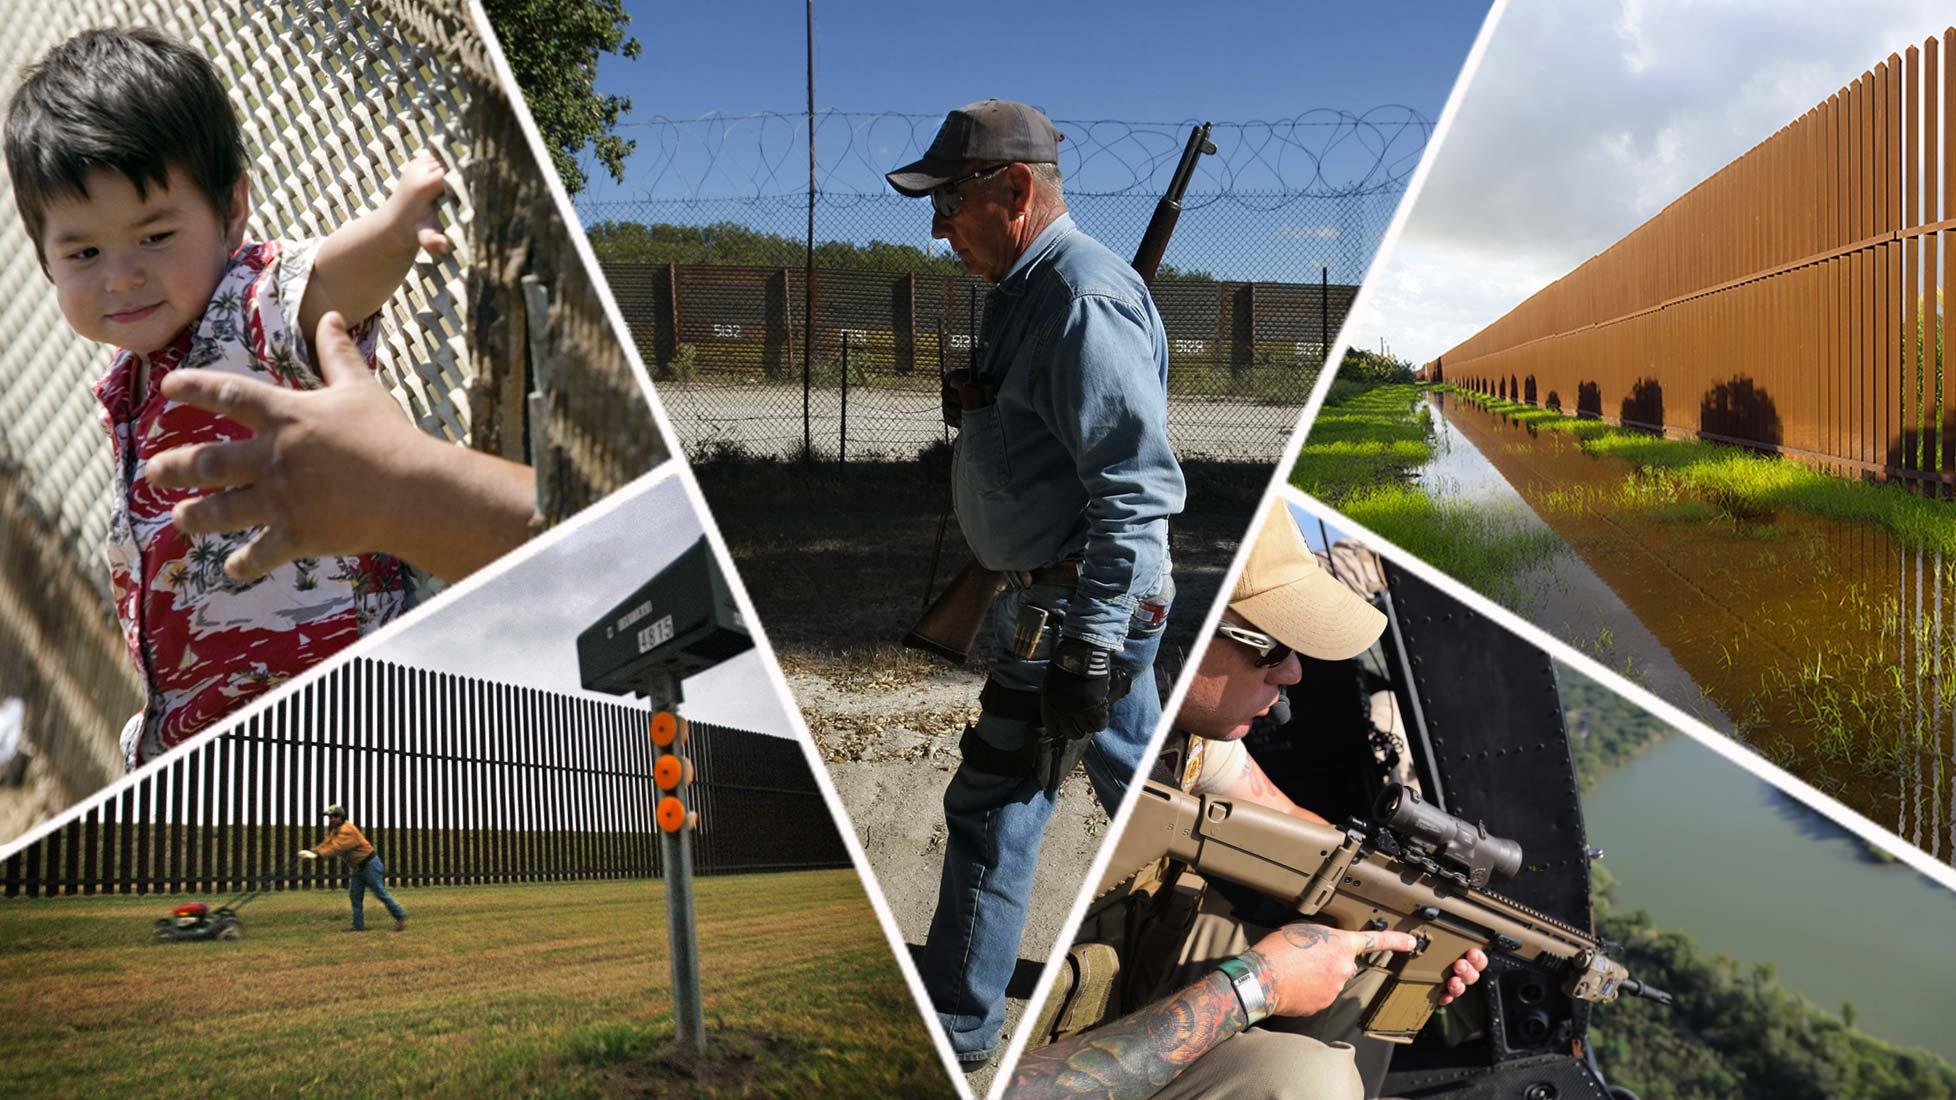 What Trump's Wall Along the Mexican Border Means for Housing Markets